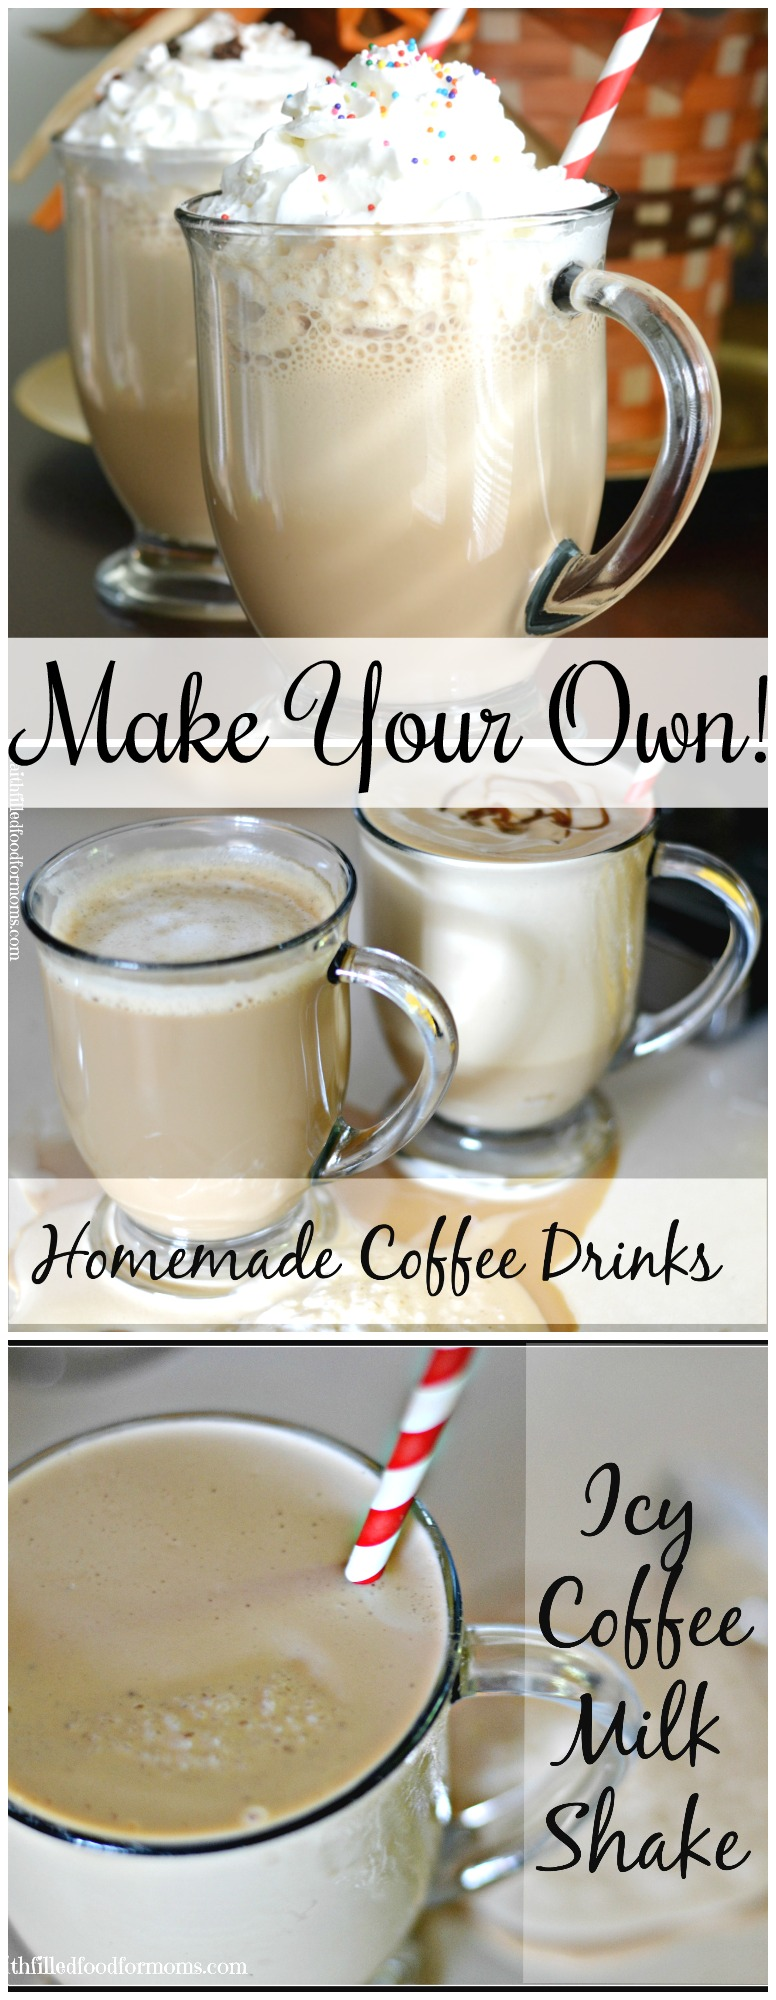 Ditch the refined sugar, processed whipped topping and the high cost of coffee shop drinks. Making your own version of popular brews at home is fun and delicious.